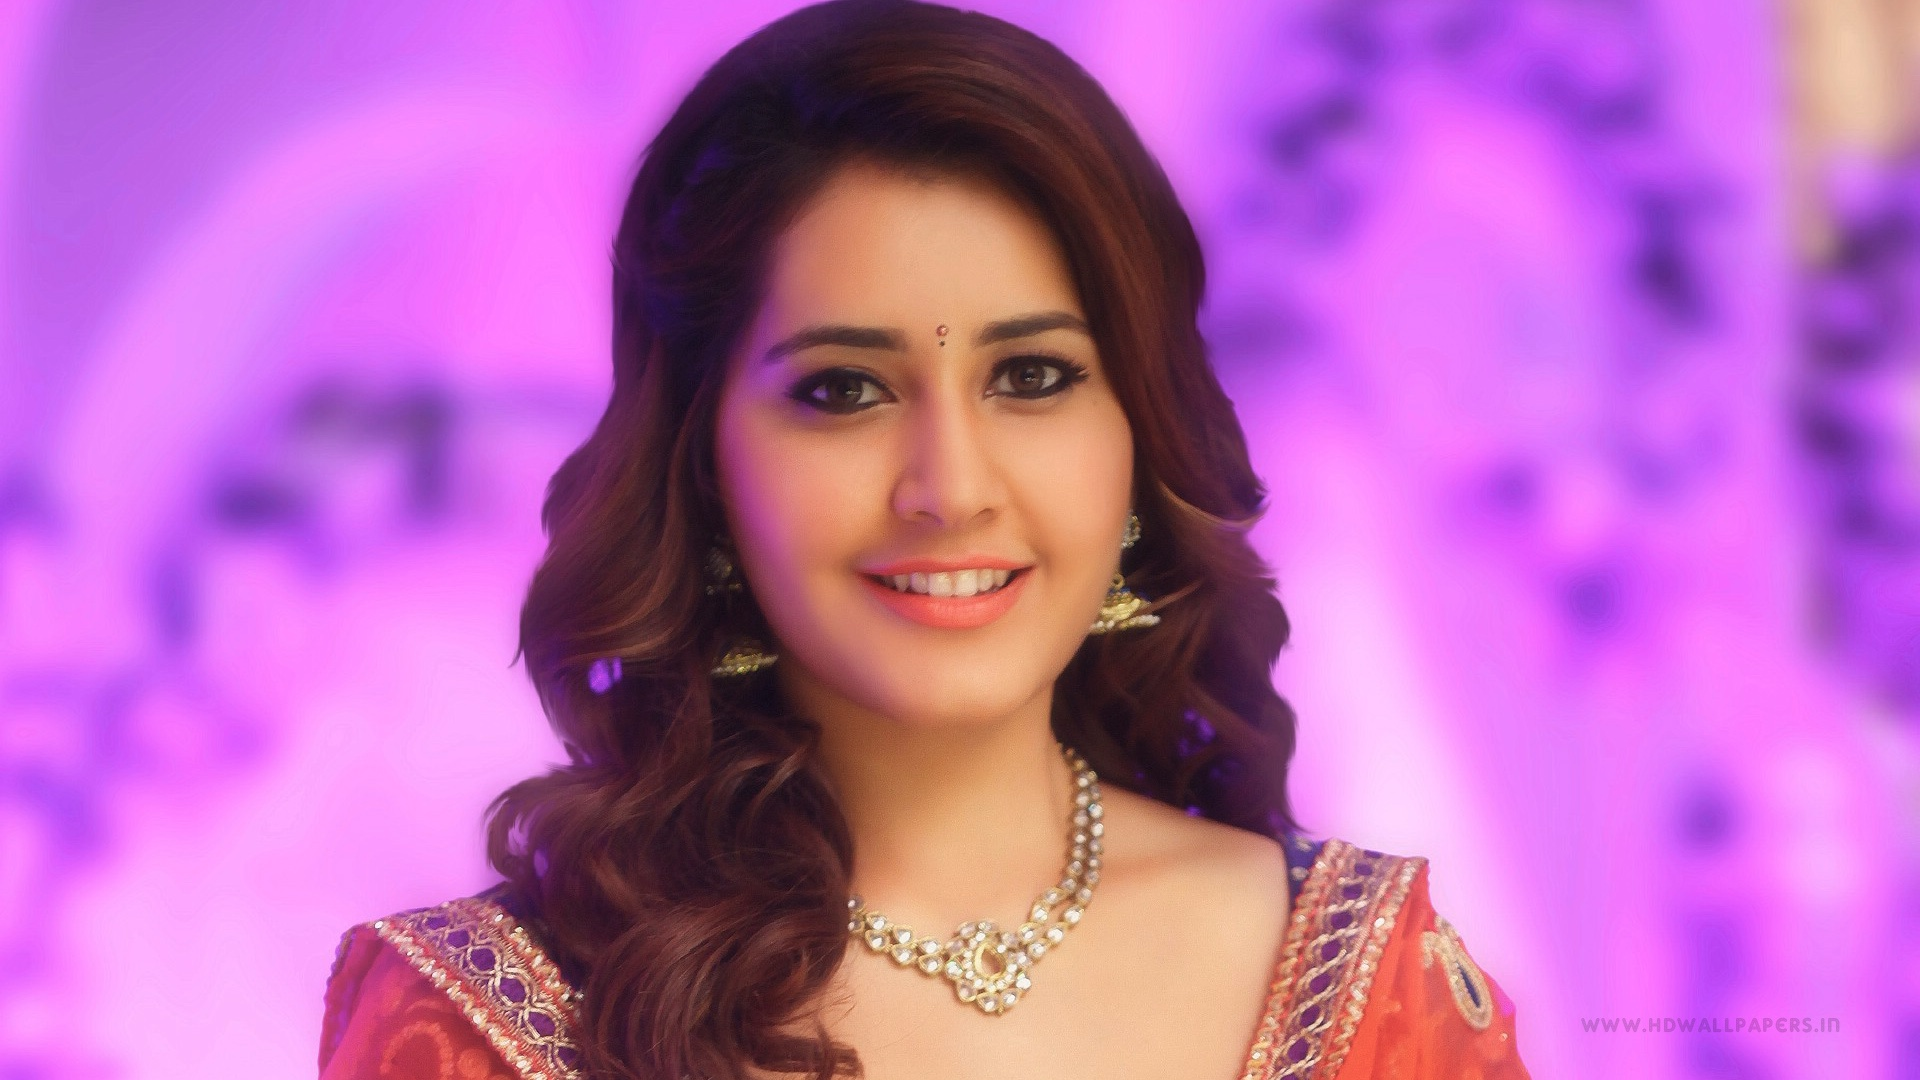 Rashi Khanna Indian Actress Wallpapers In Jpg Format For Free Download